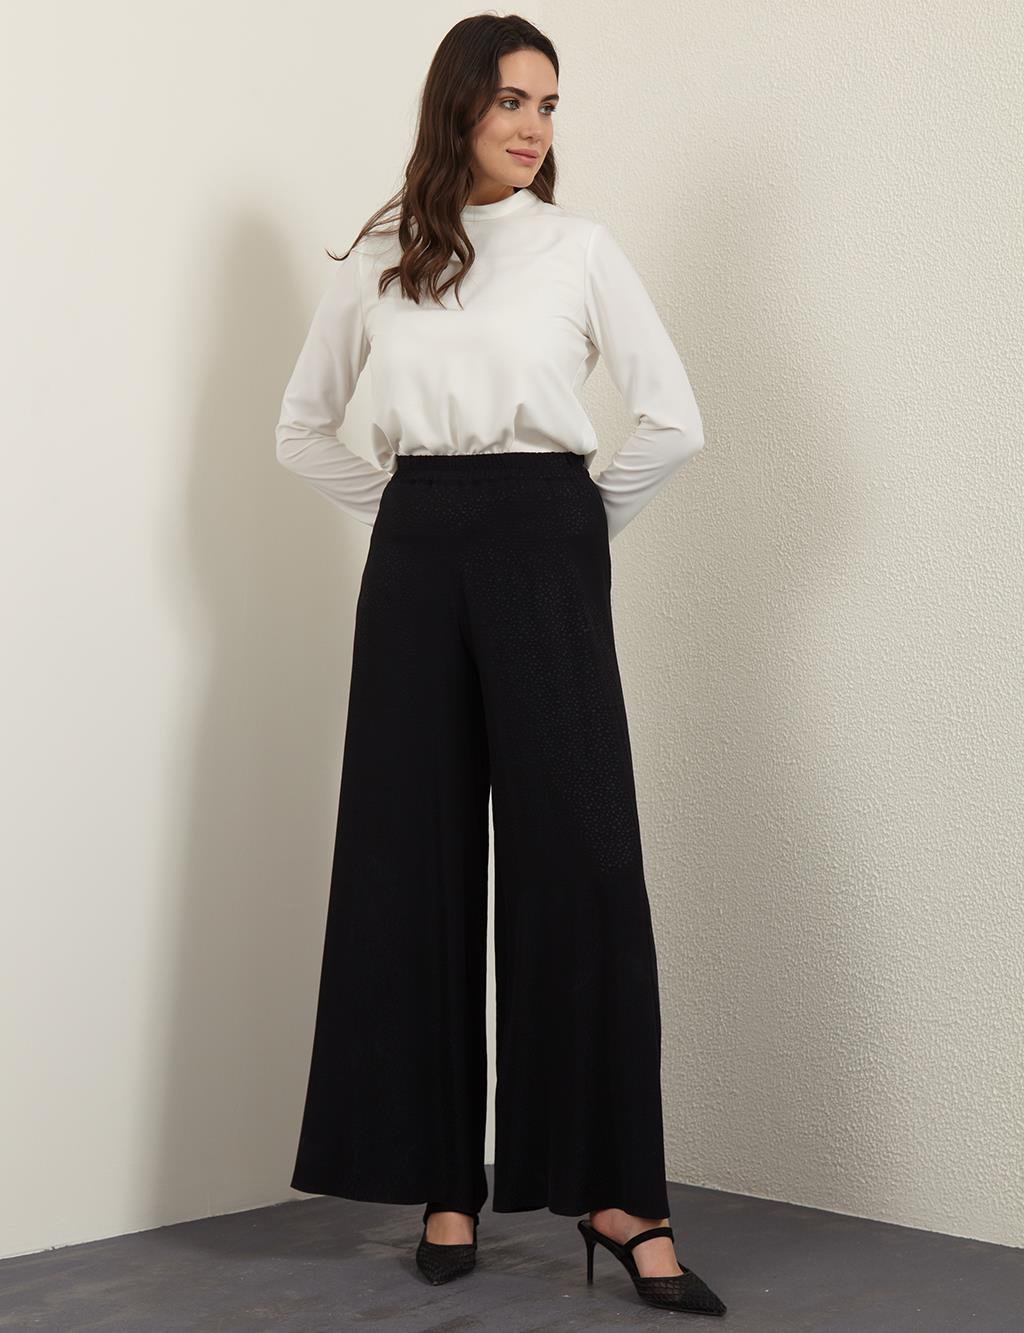 Textured Wide Leg Casual Fit Pants B21 19028A Black